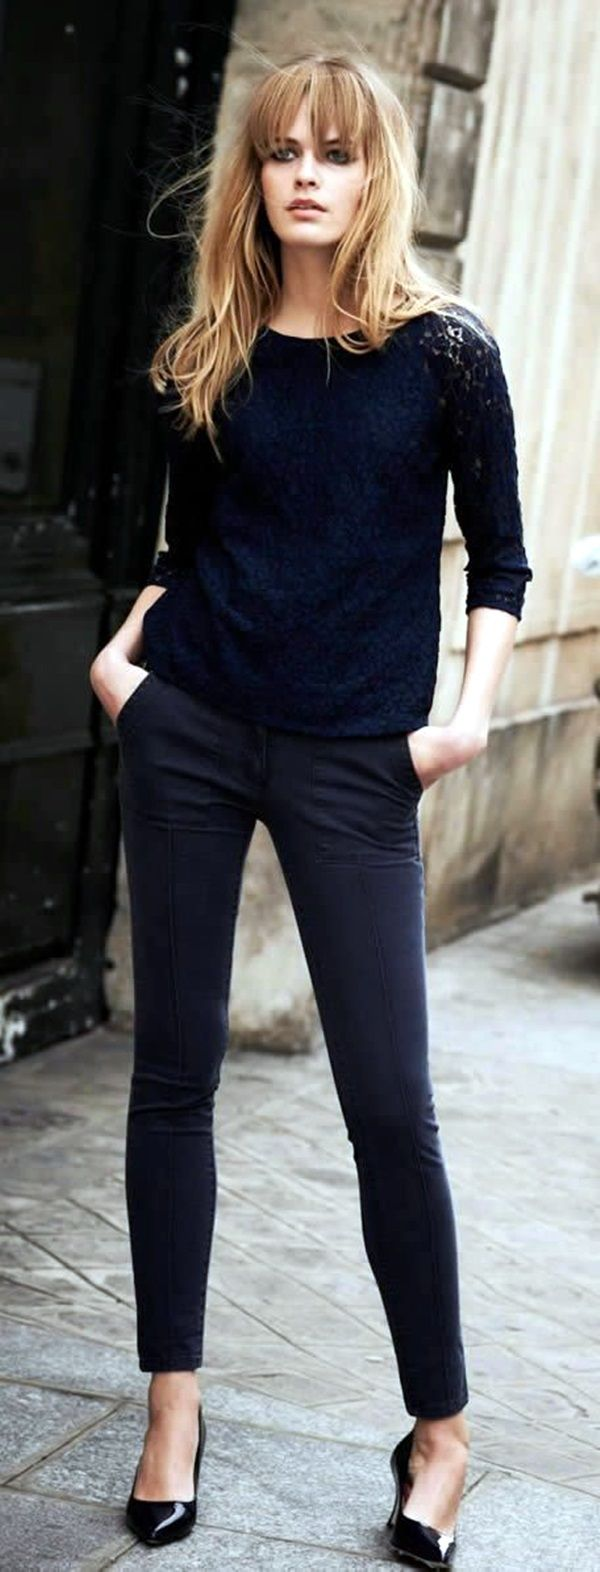 17 Casual Fashion Ideas This Fall: 17 Best Ideas About Casual Work Outfits On Pinterest